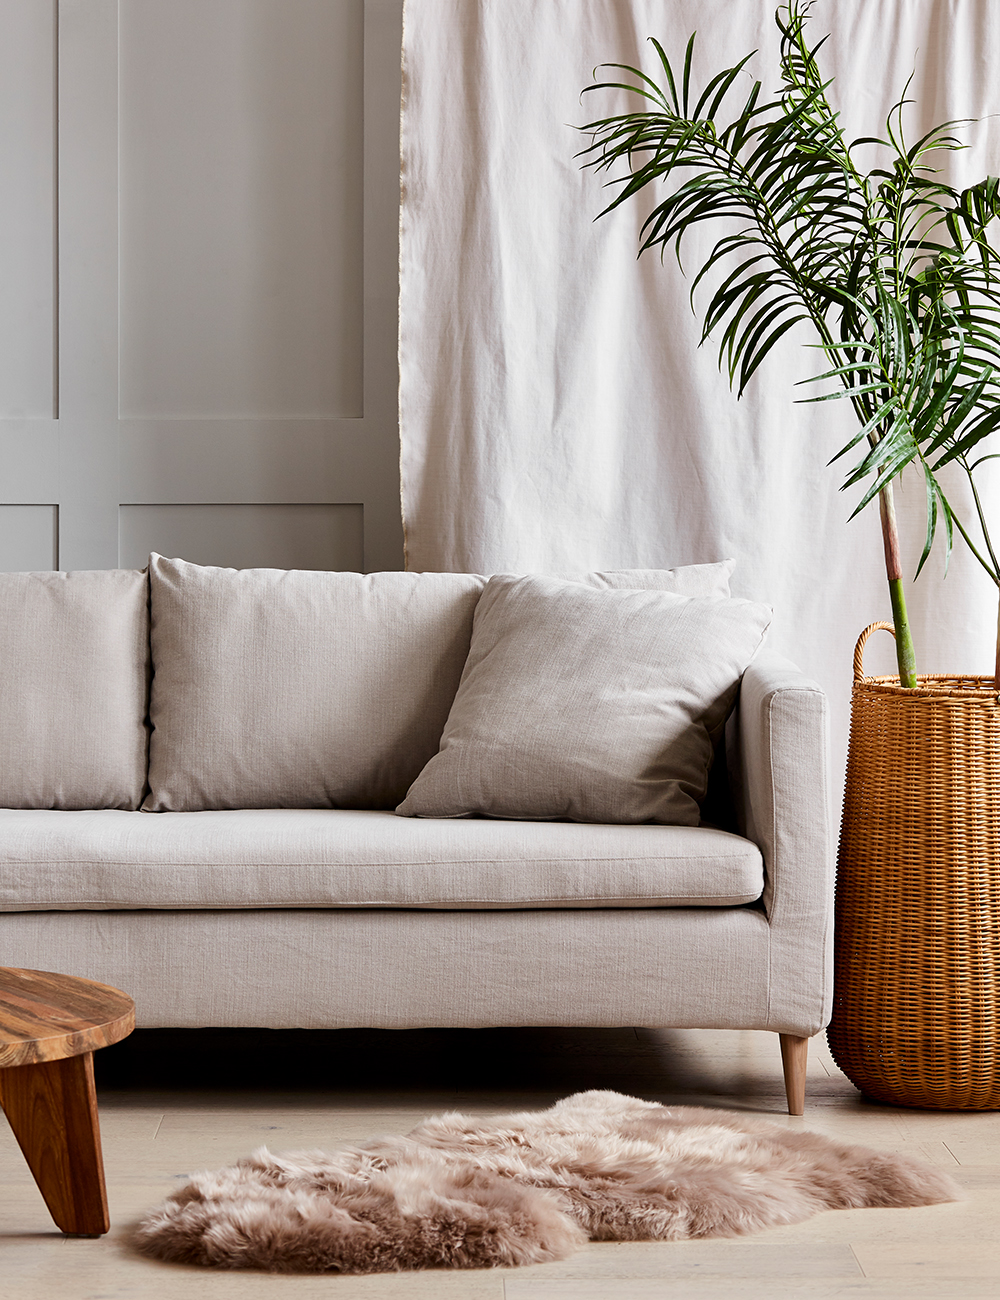 Read: How to Introduce a Linen Sofa to your Home